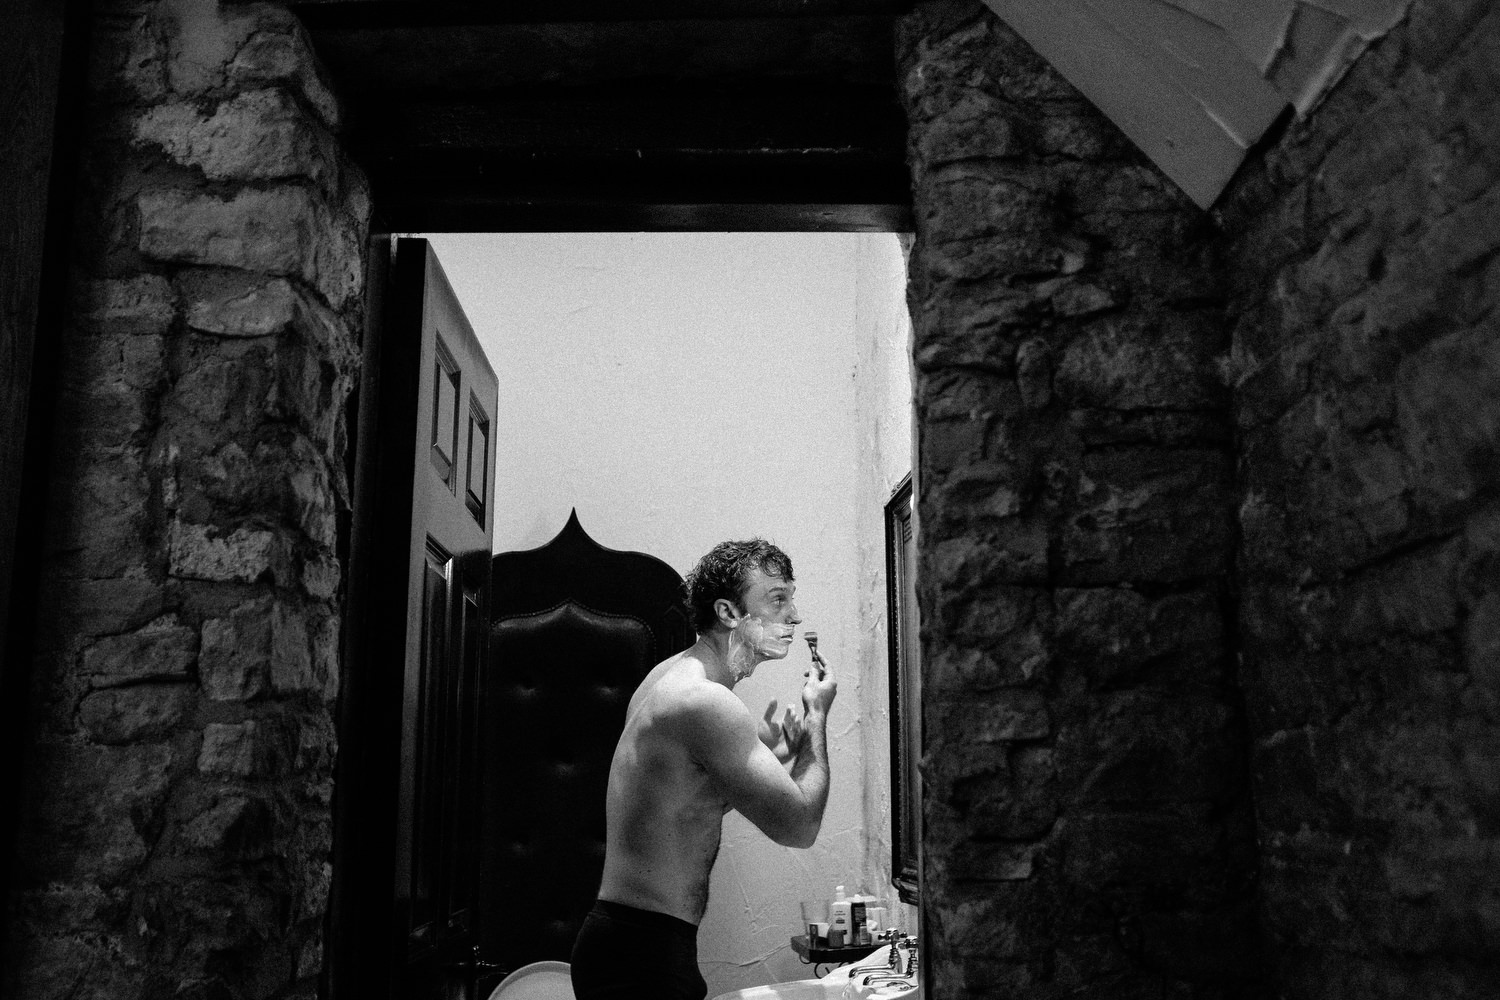 000000000000000000000011_preparation_letter_photography_david_mcclelland_ireland_crossword_shaving_castle_kinnity_wedding_groom_photographer_fujifilm